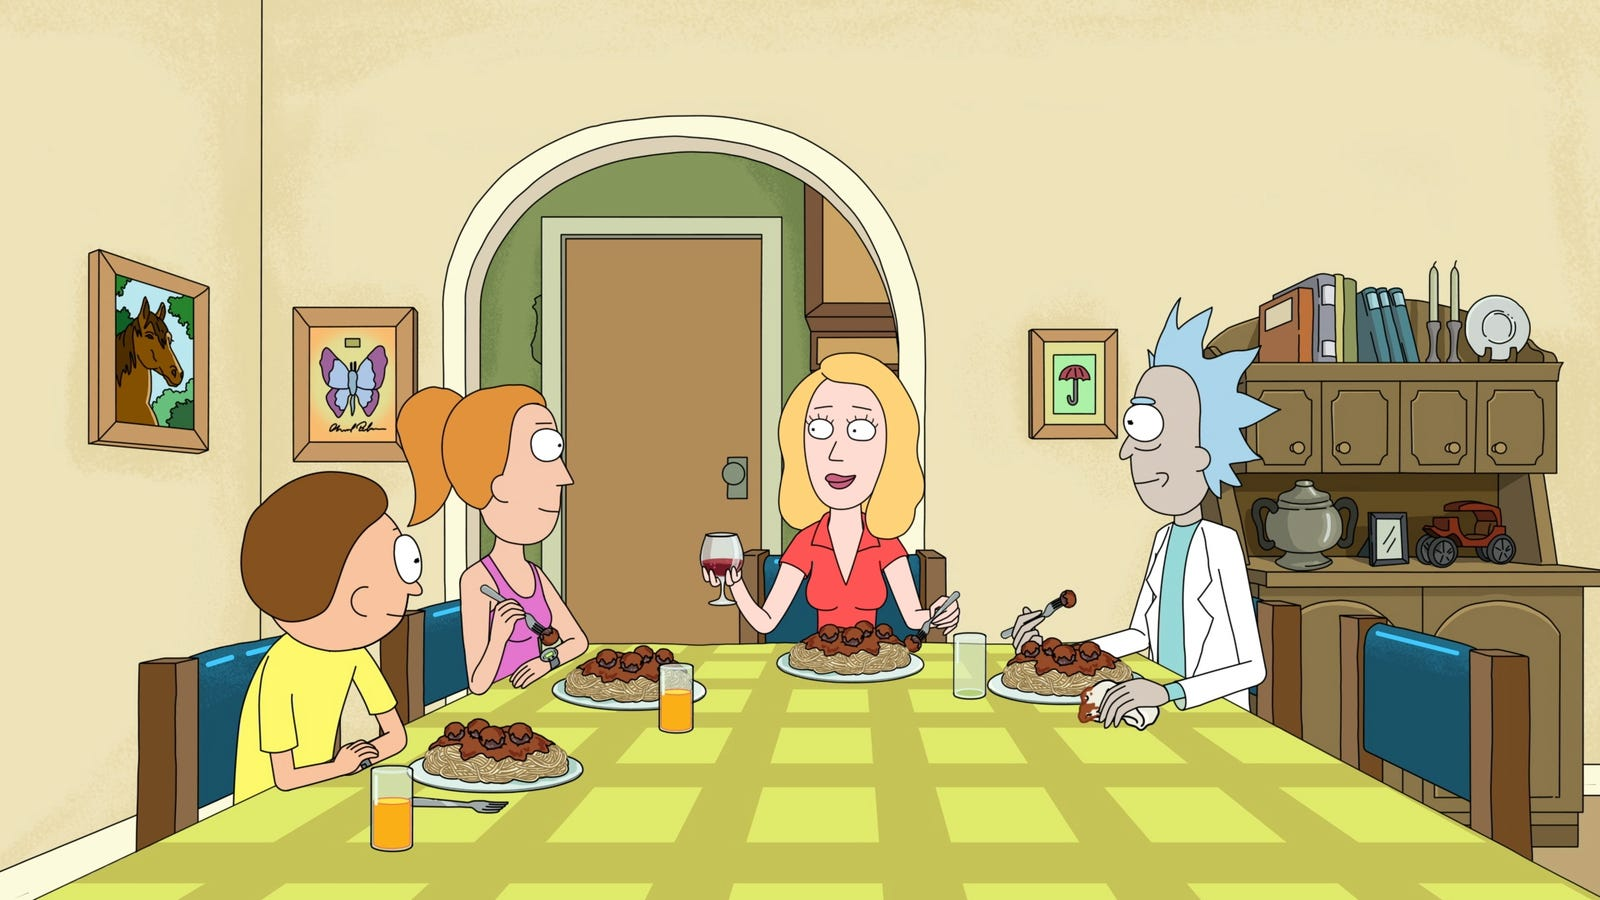 Rick And Morty's worst fans don't deserve Rick And Morty